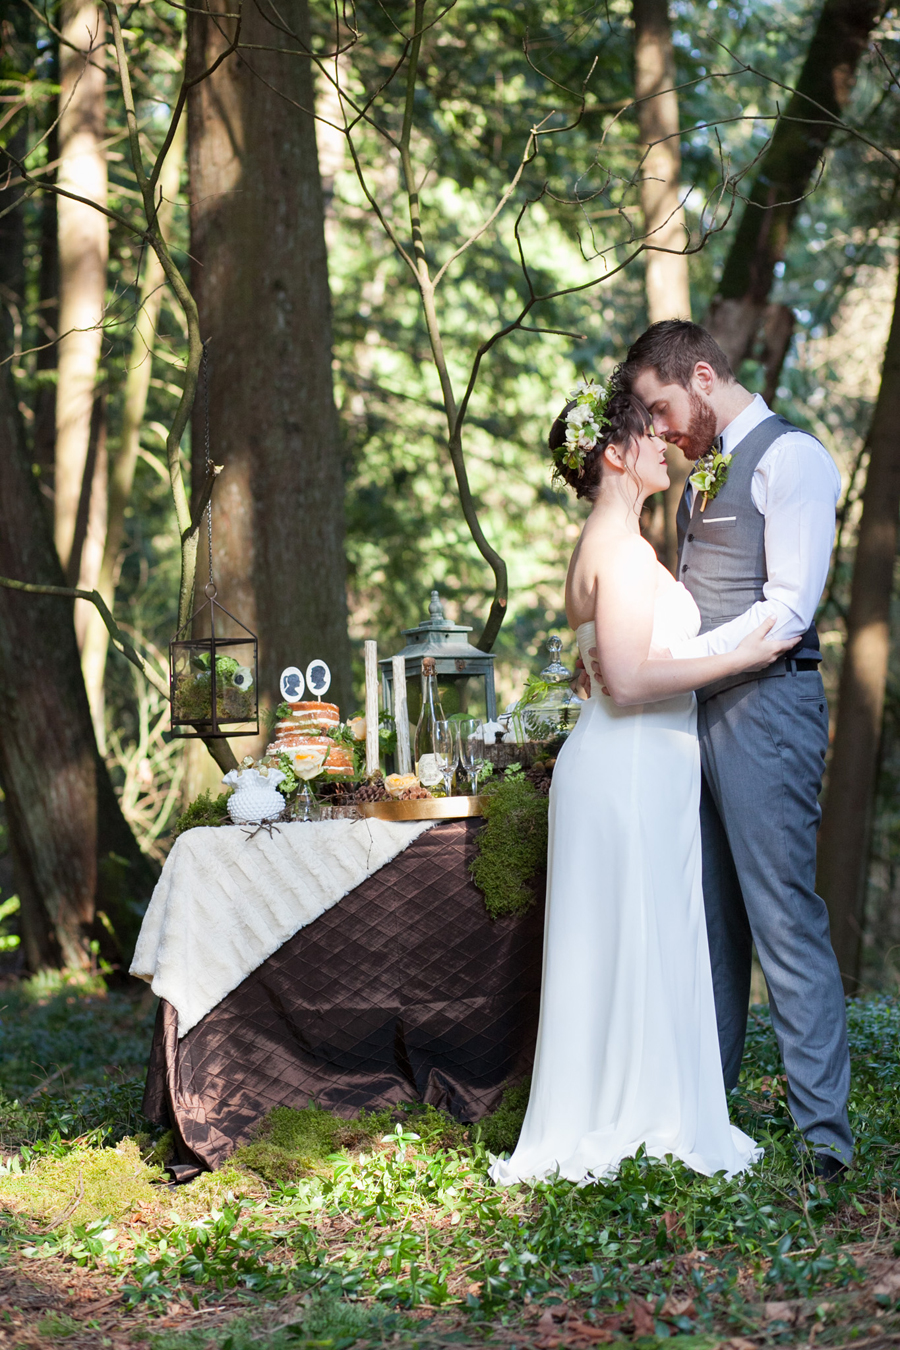 023-pacific-northwest-woodland-bridal-styled-session-lynden-washington-katheryn-moran-photography.jpg